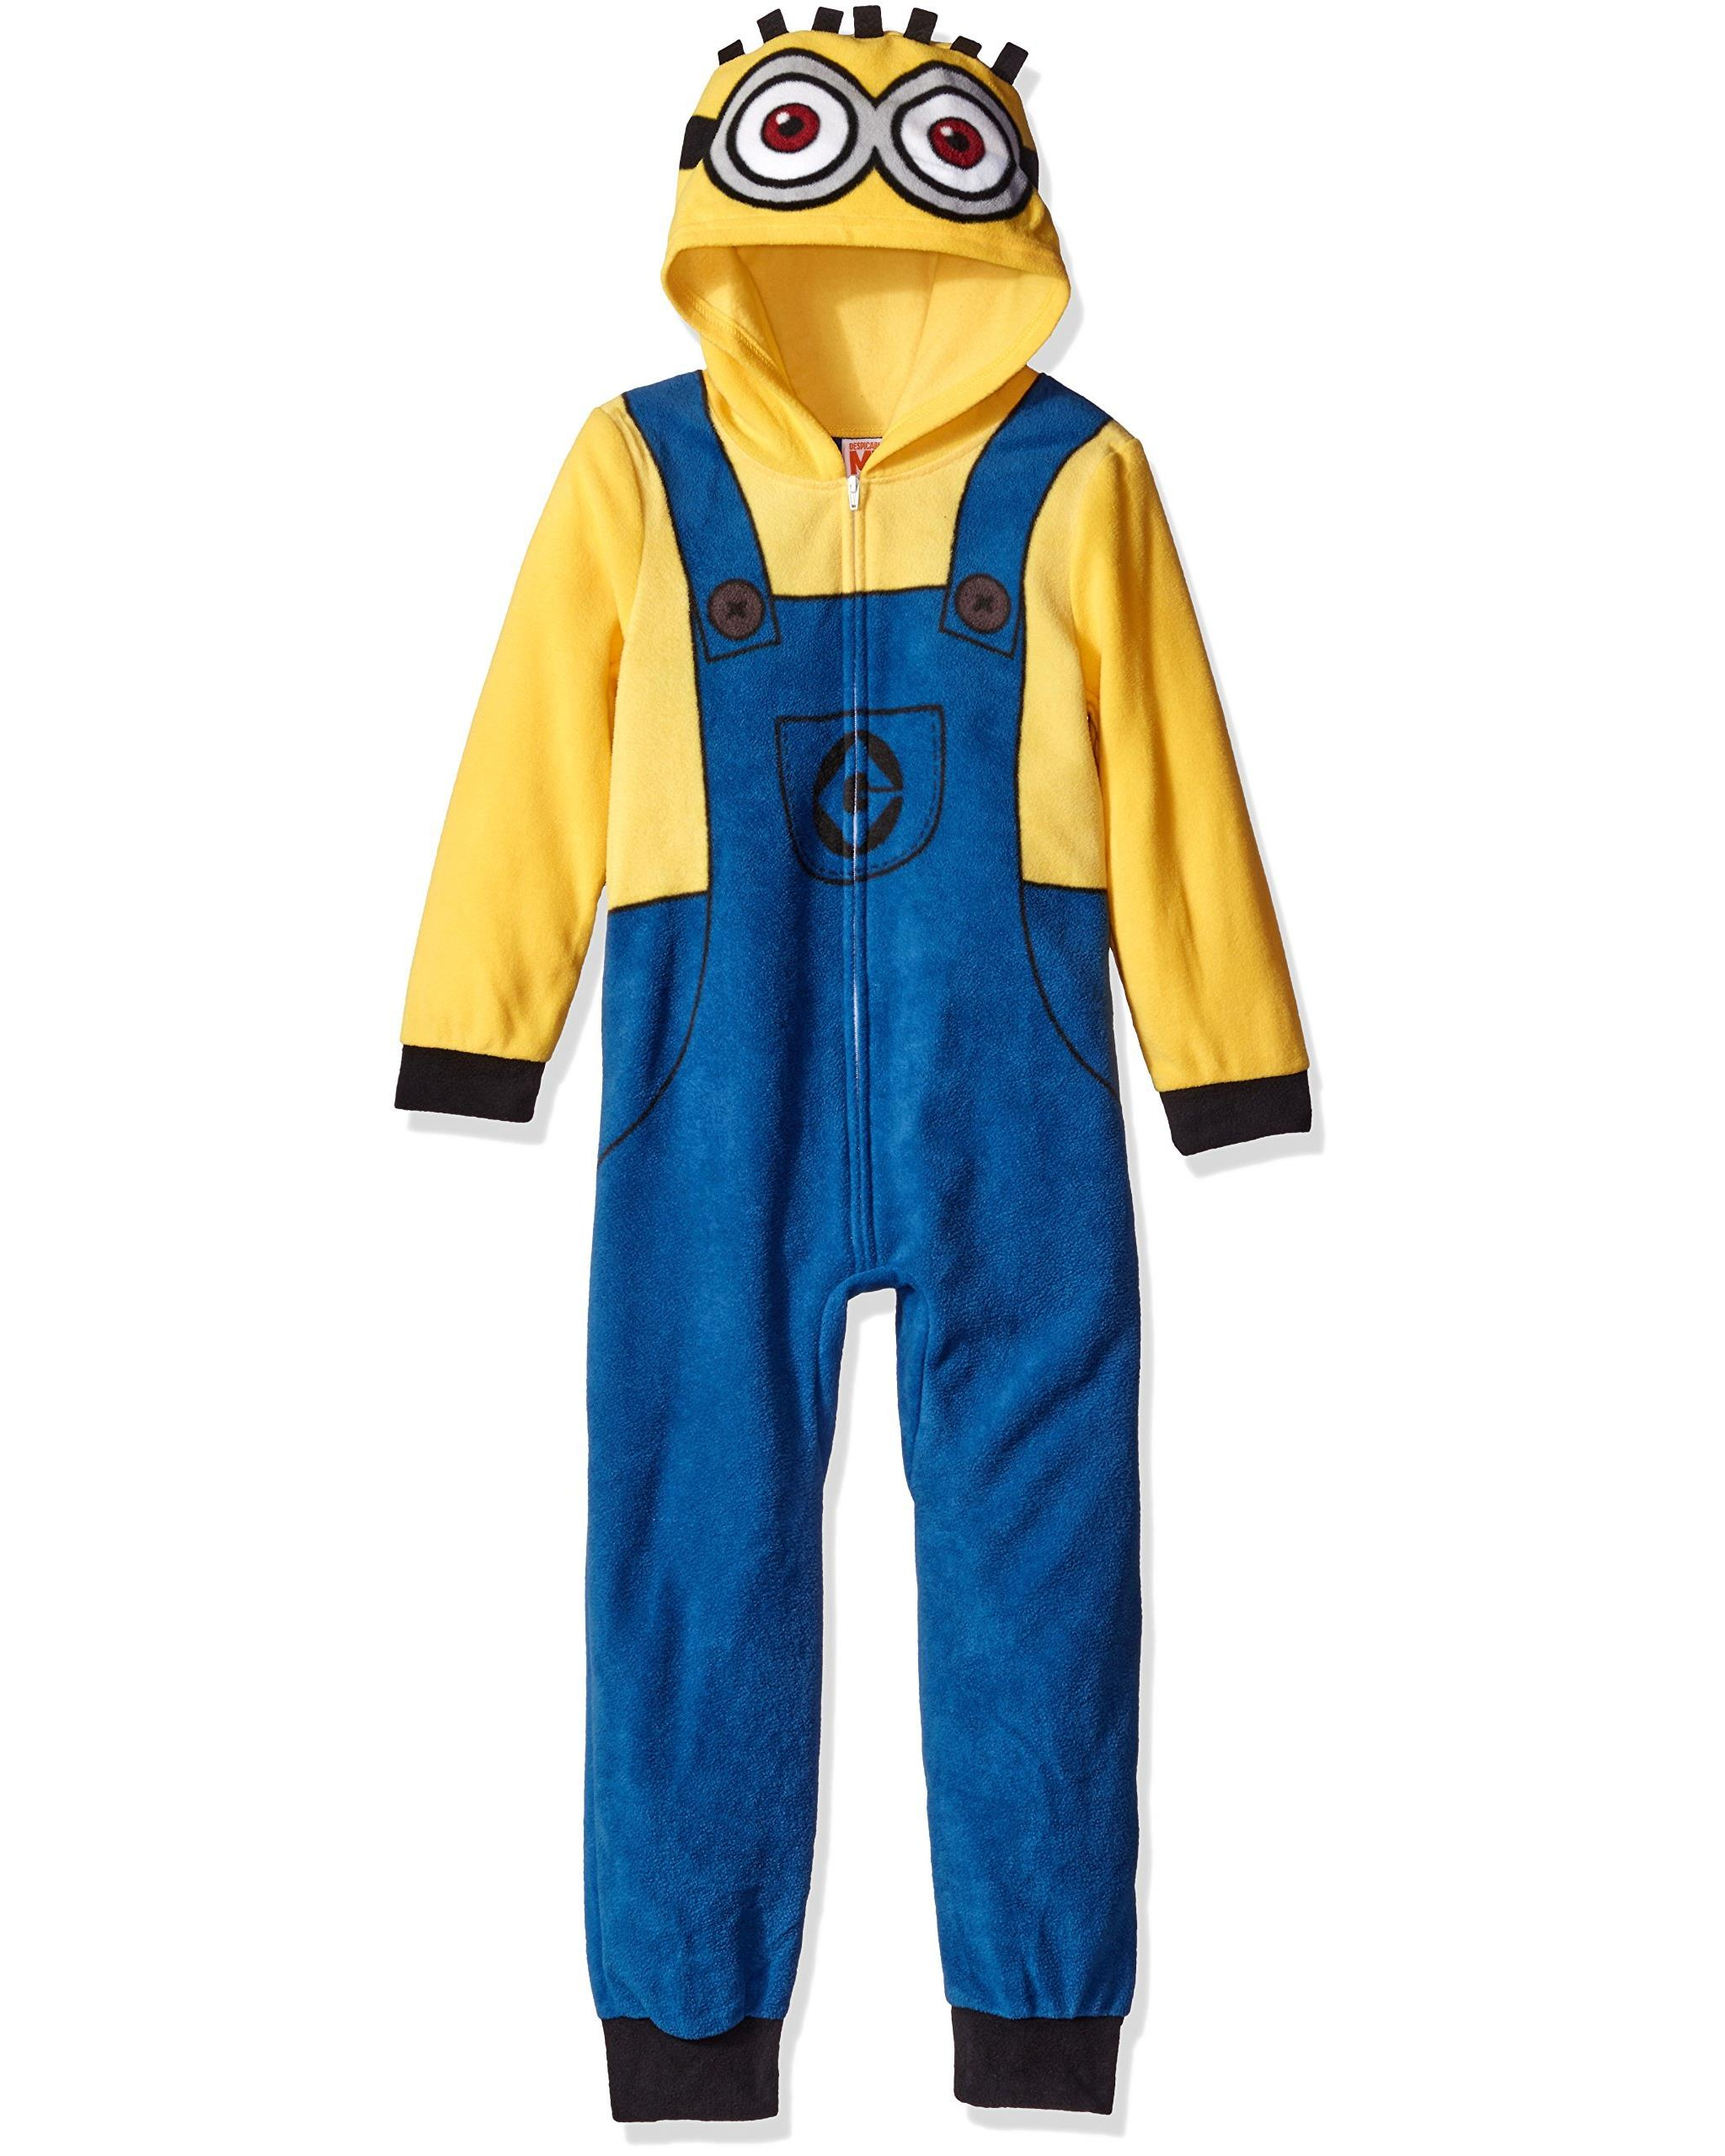 Despicable Me Boys' Minion Family Cosplay Union Suit, Yellow, Size: 4